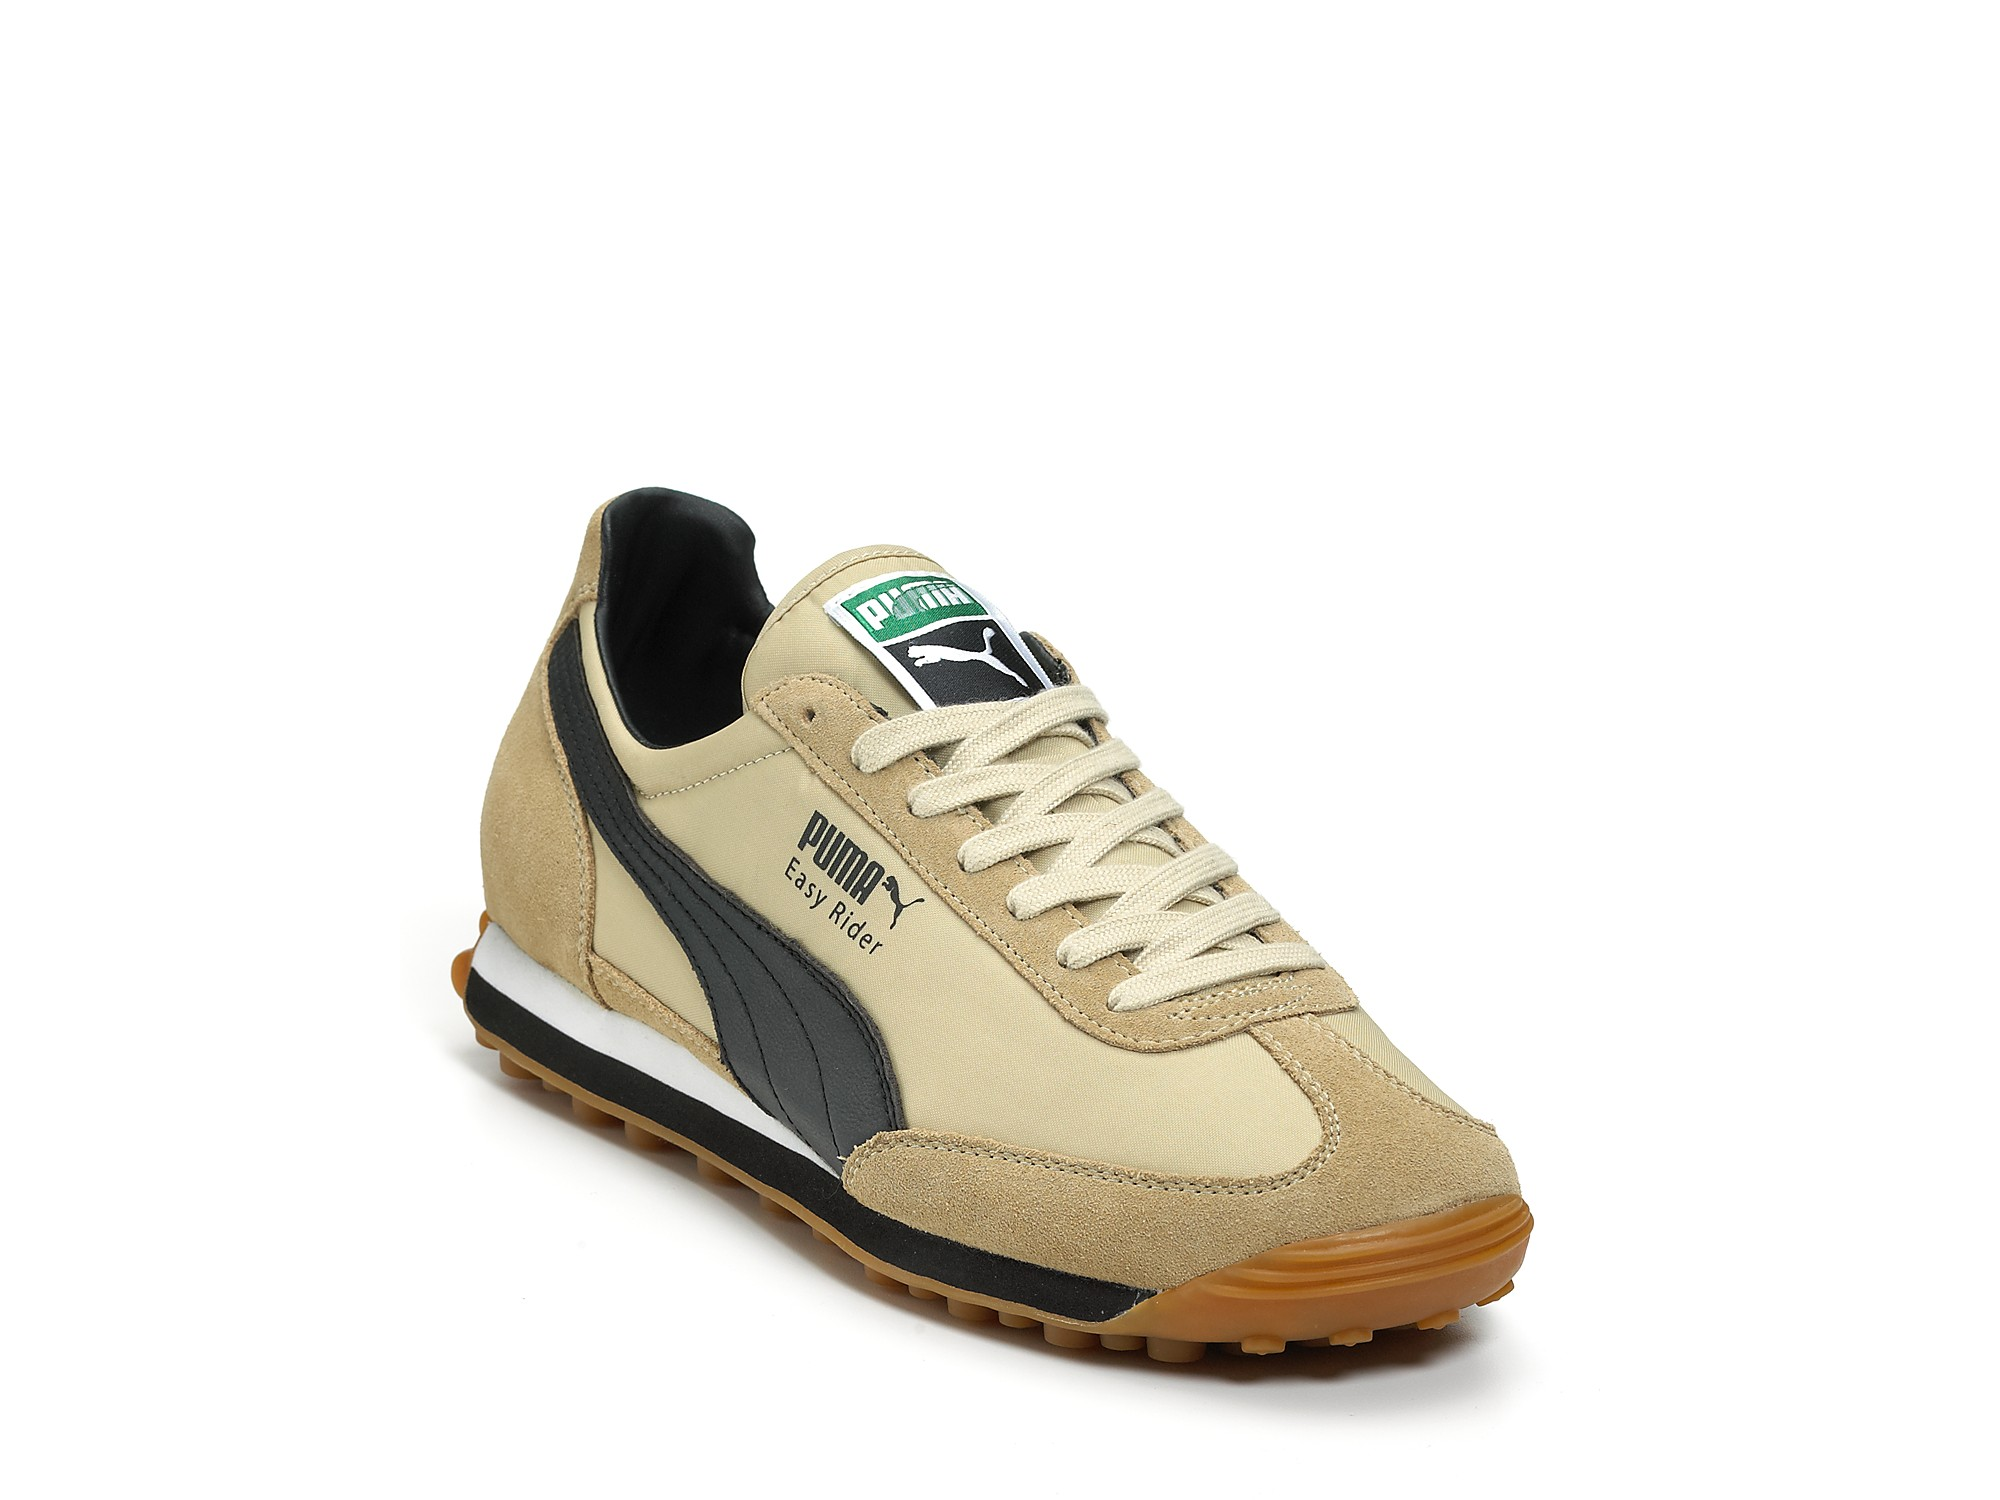 921a5ac47b4 Lyst - PUMA Easy Rider 78 Sneaker in Natural for Men